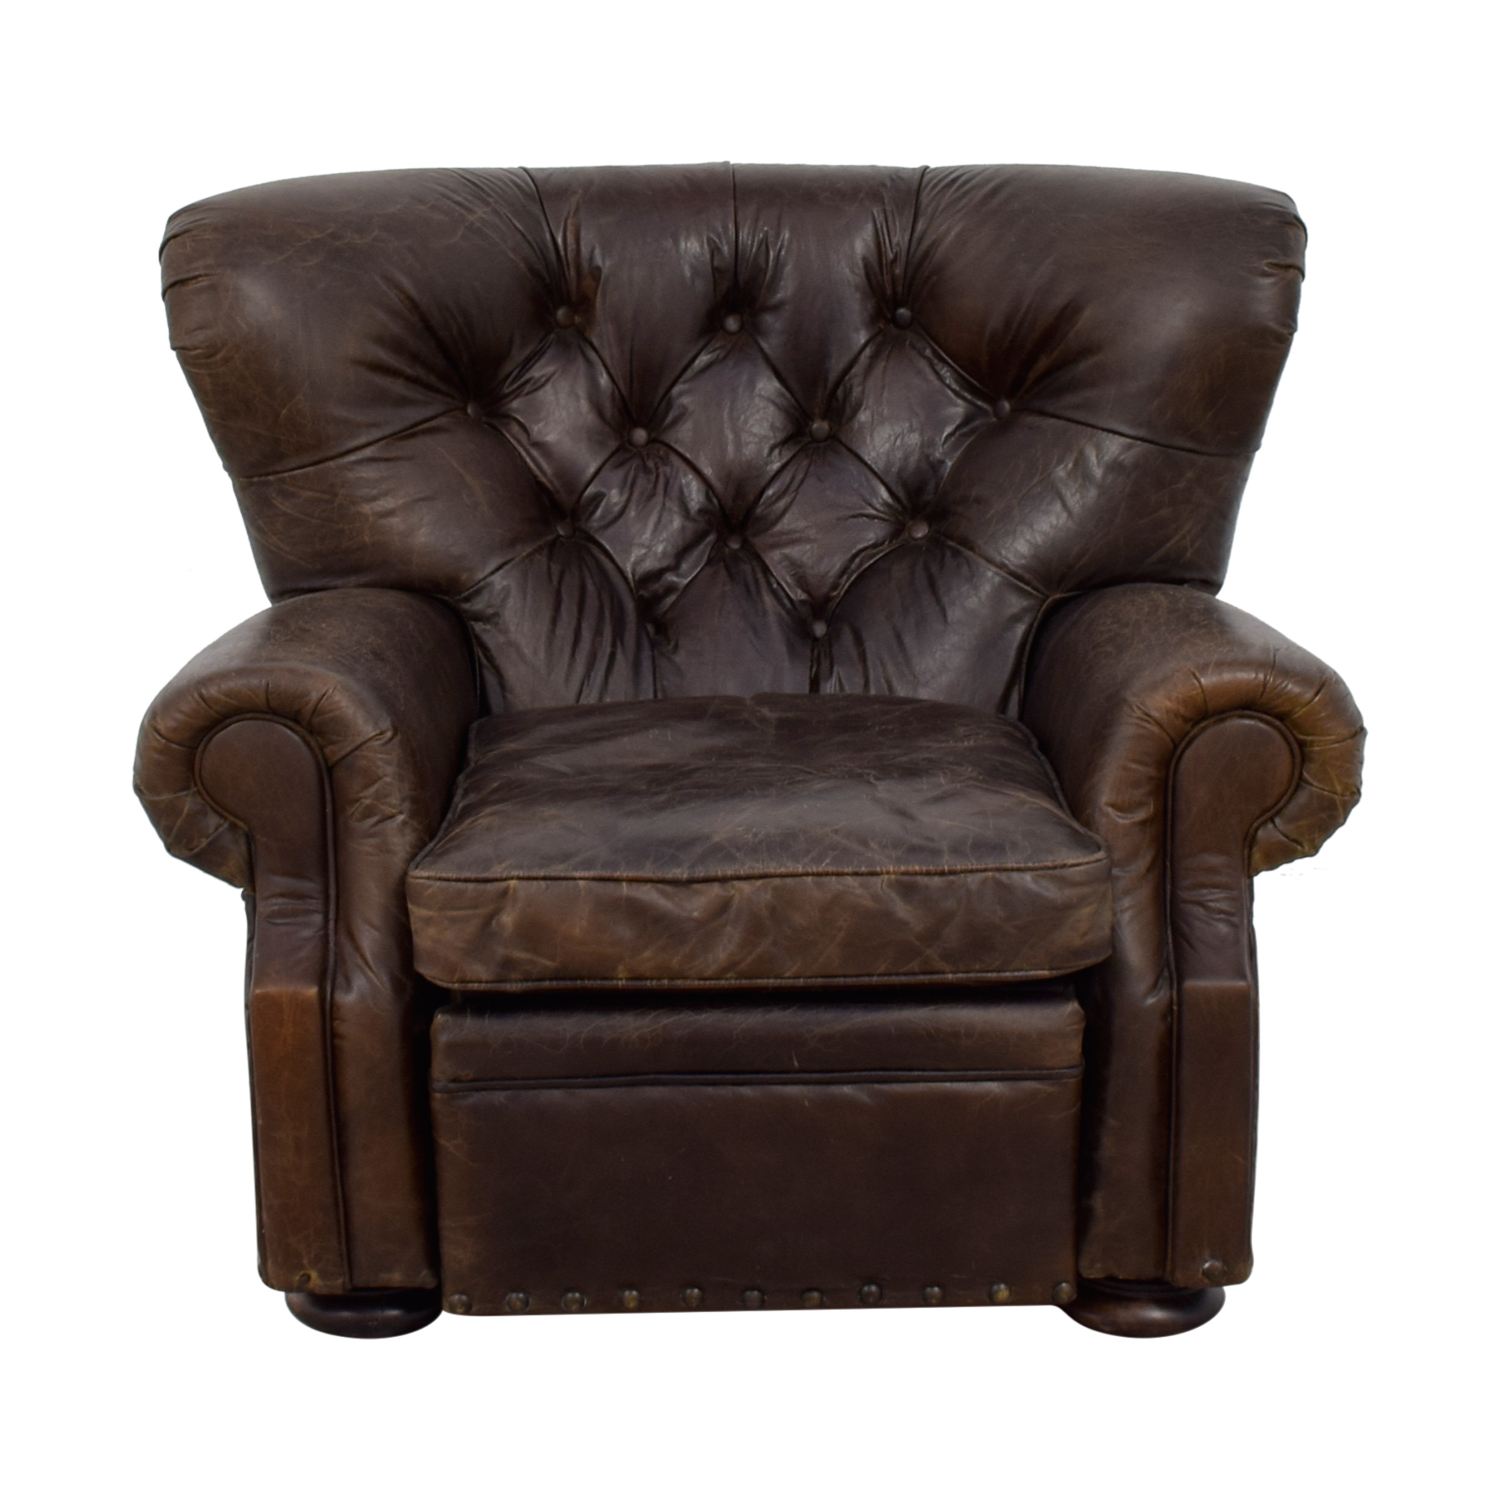 Restoration Hardware Leather Chairs 62 Off Restoration Hardware Restoration Hardware Churchill Brown Leather Nailhead Tufted Recliner Chairs